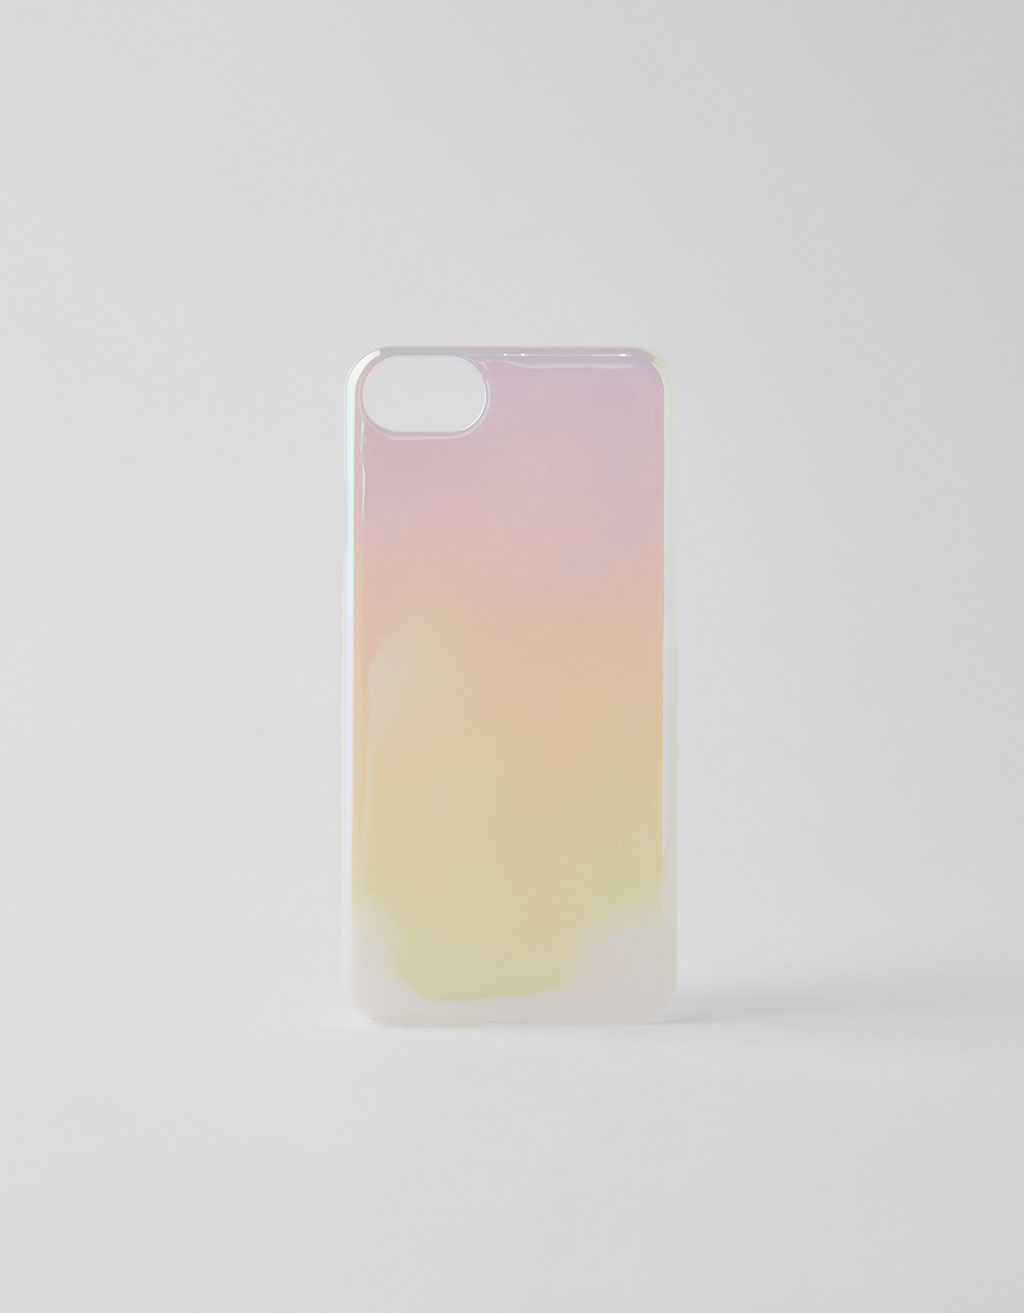 Iridescent iPhone 6/6s/7/8 case